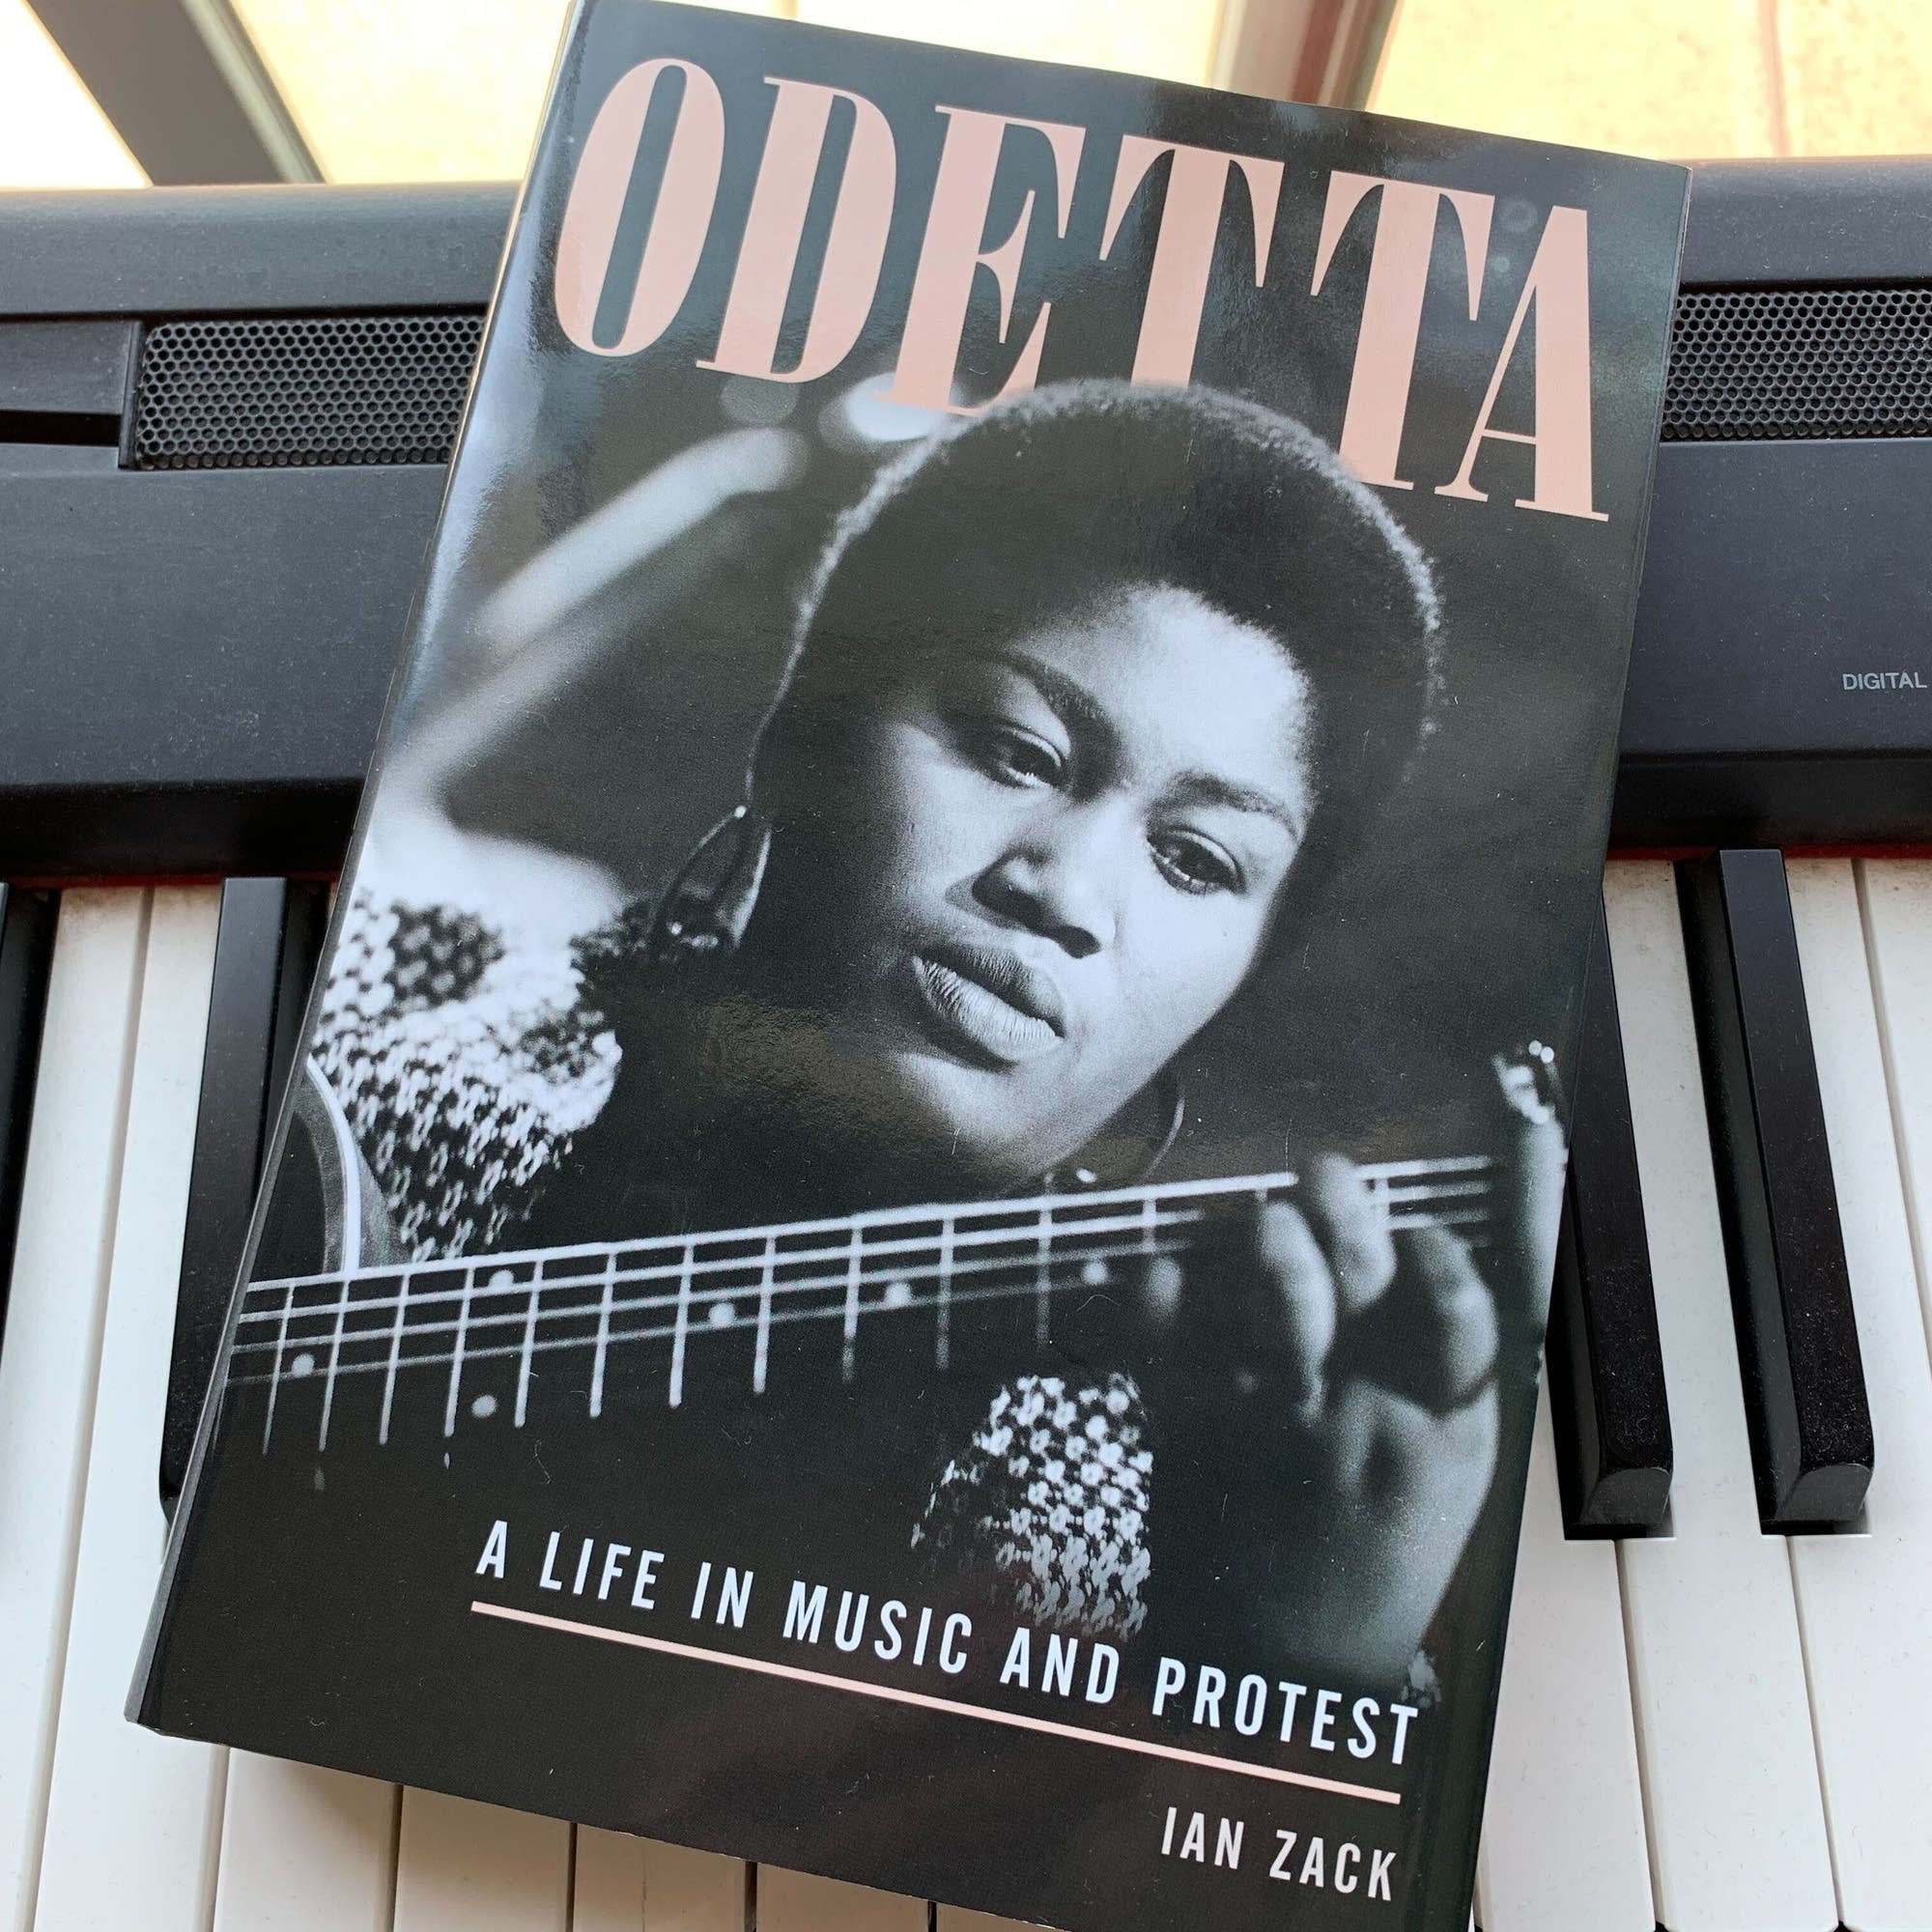 'Odetta: A Life in Music and Protest.'